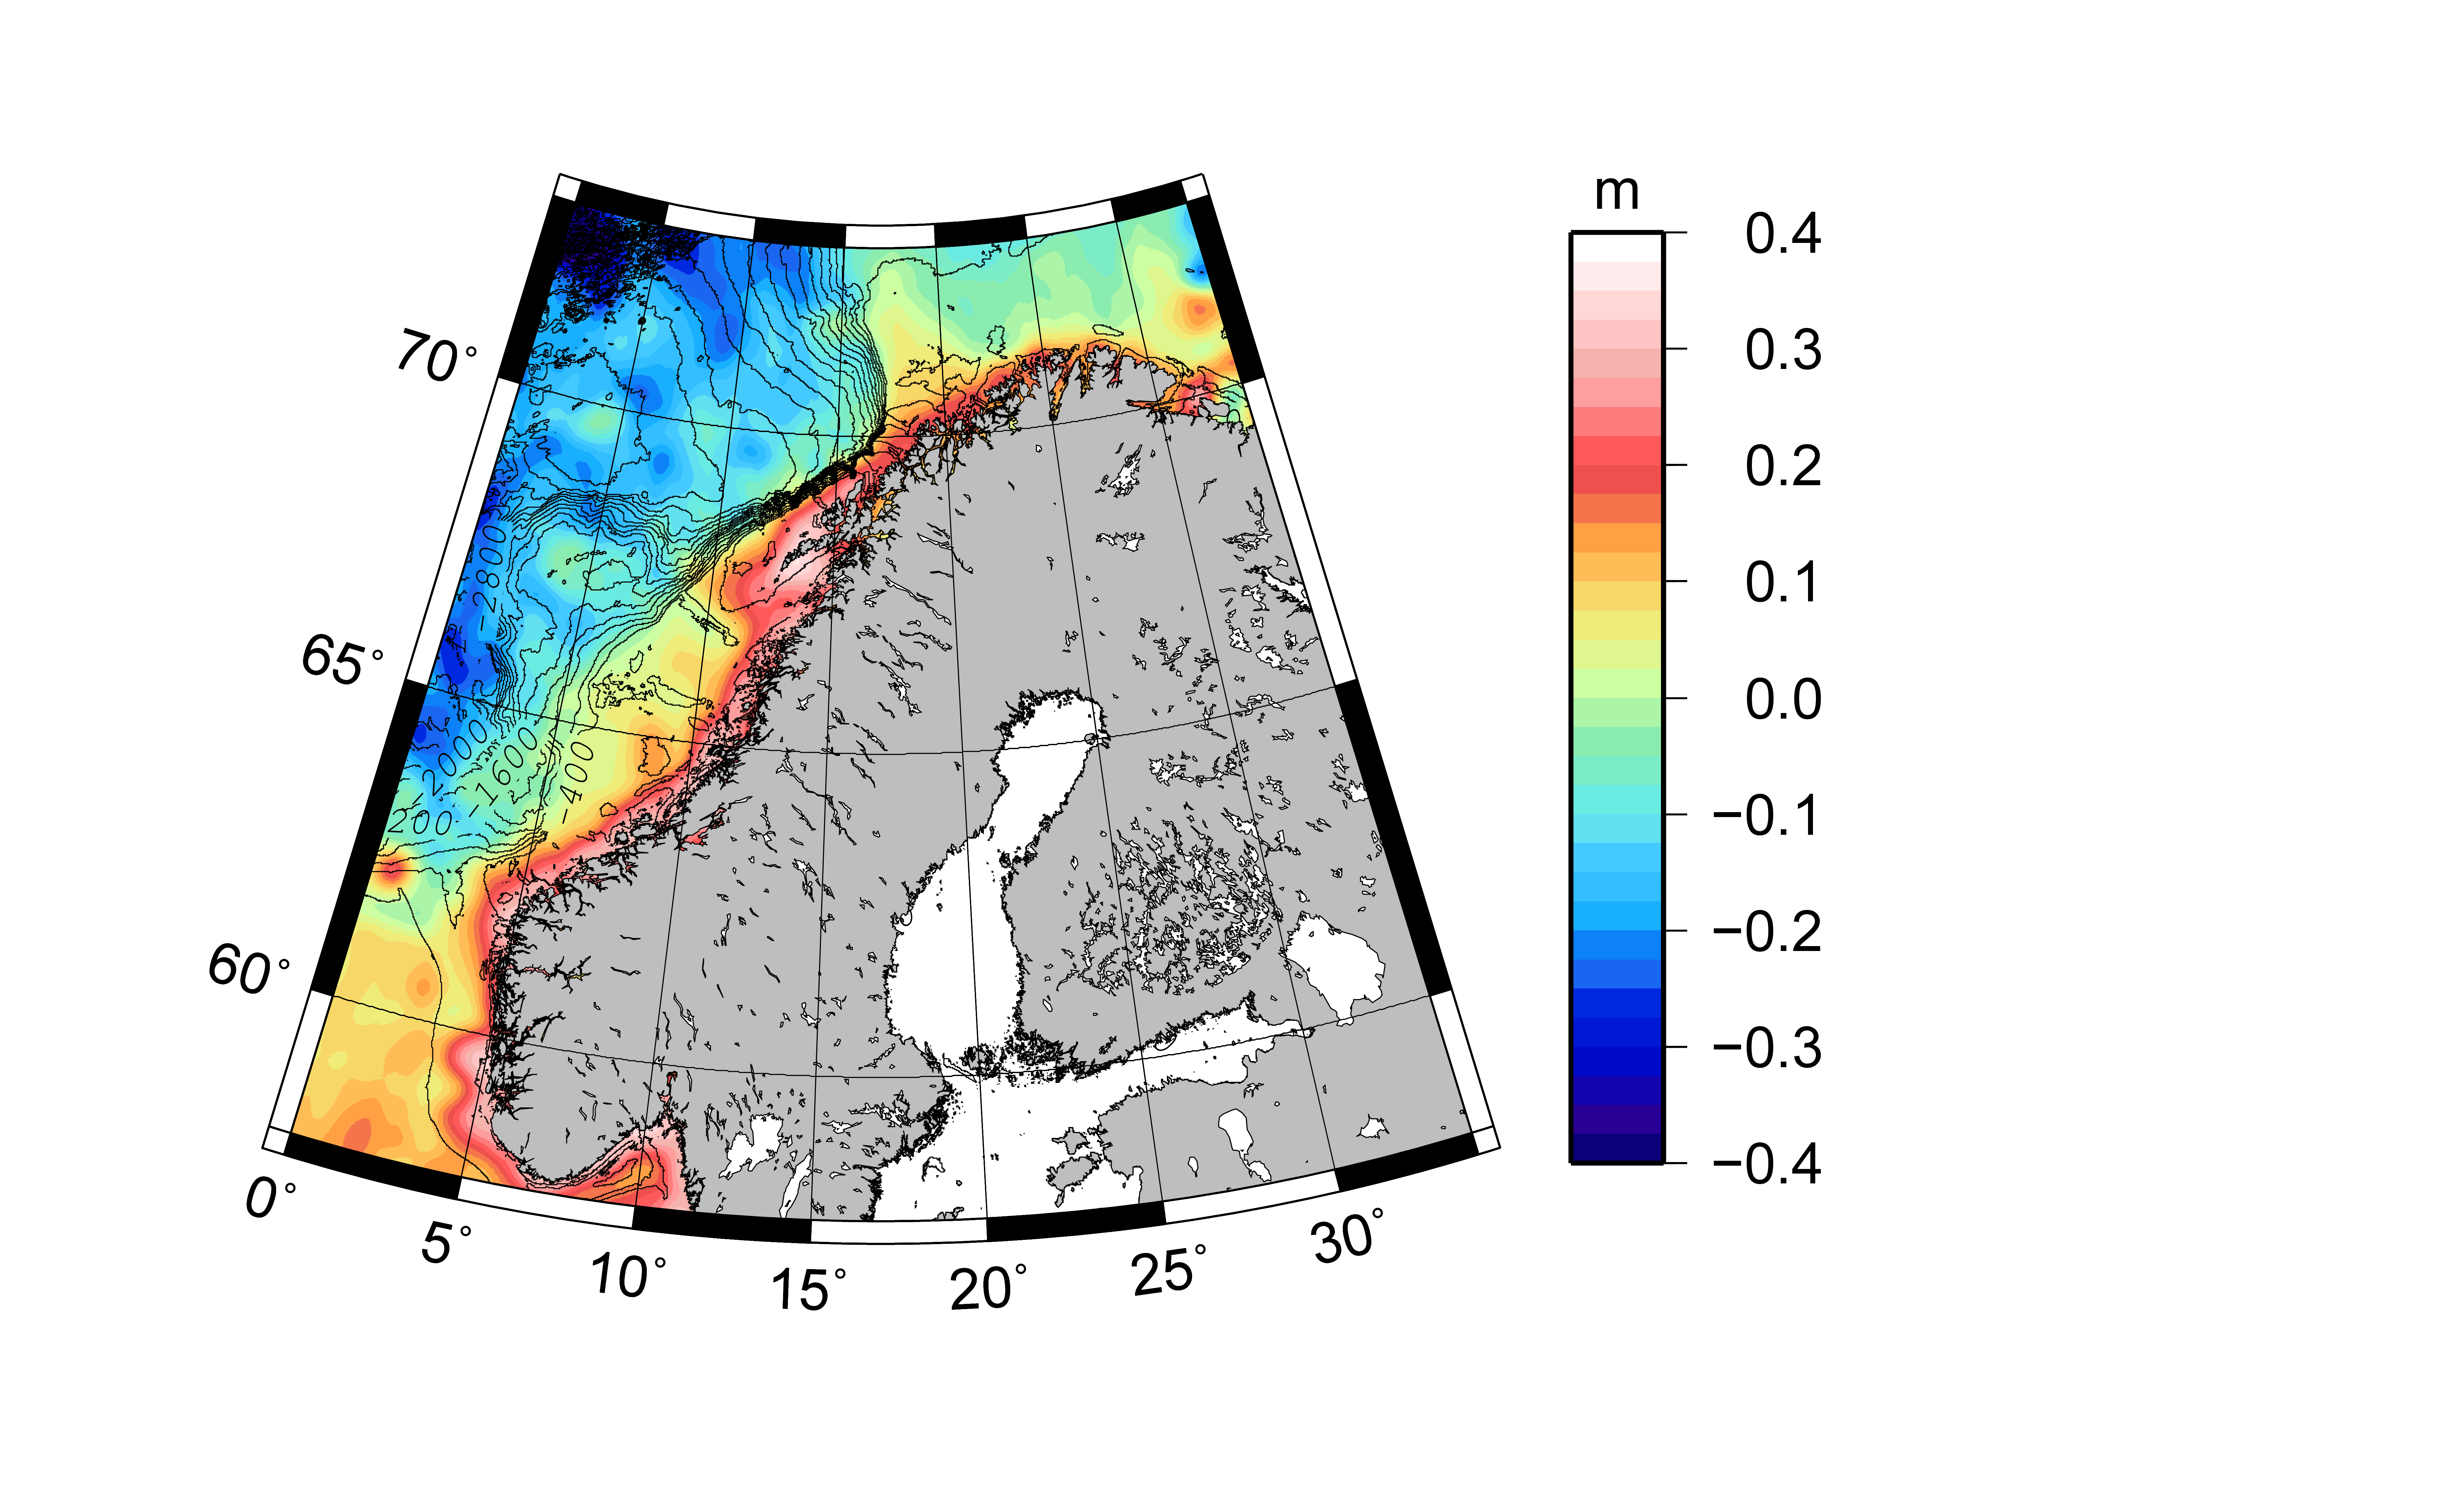 Coastal mean dynamic topography based on CryoSat-2 and NKG2015. The mean value has been removed. 400 m isobaths from the 2014 General Bathymetric Charts of the Oceans (GEBCO) (Weatherall et al., 2015) grid are shown.